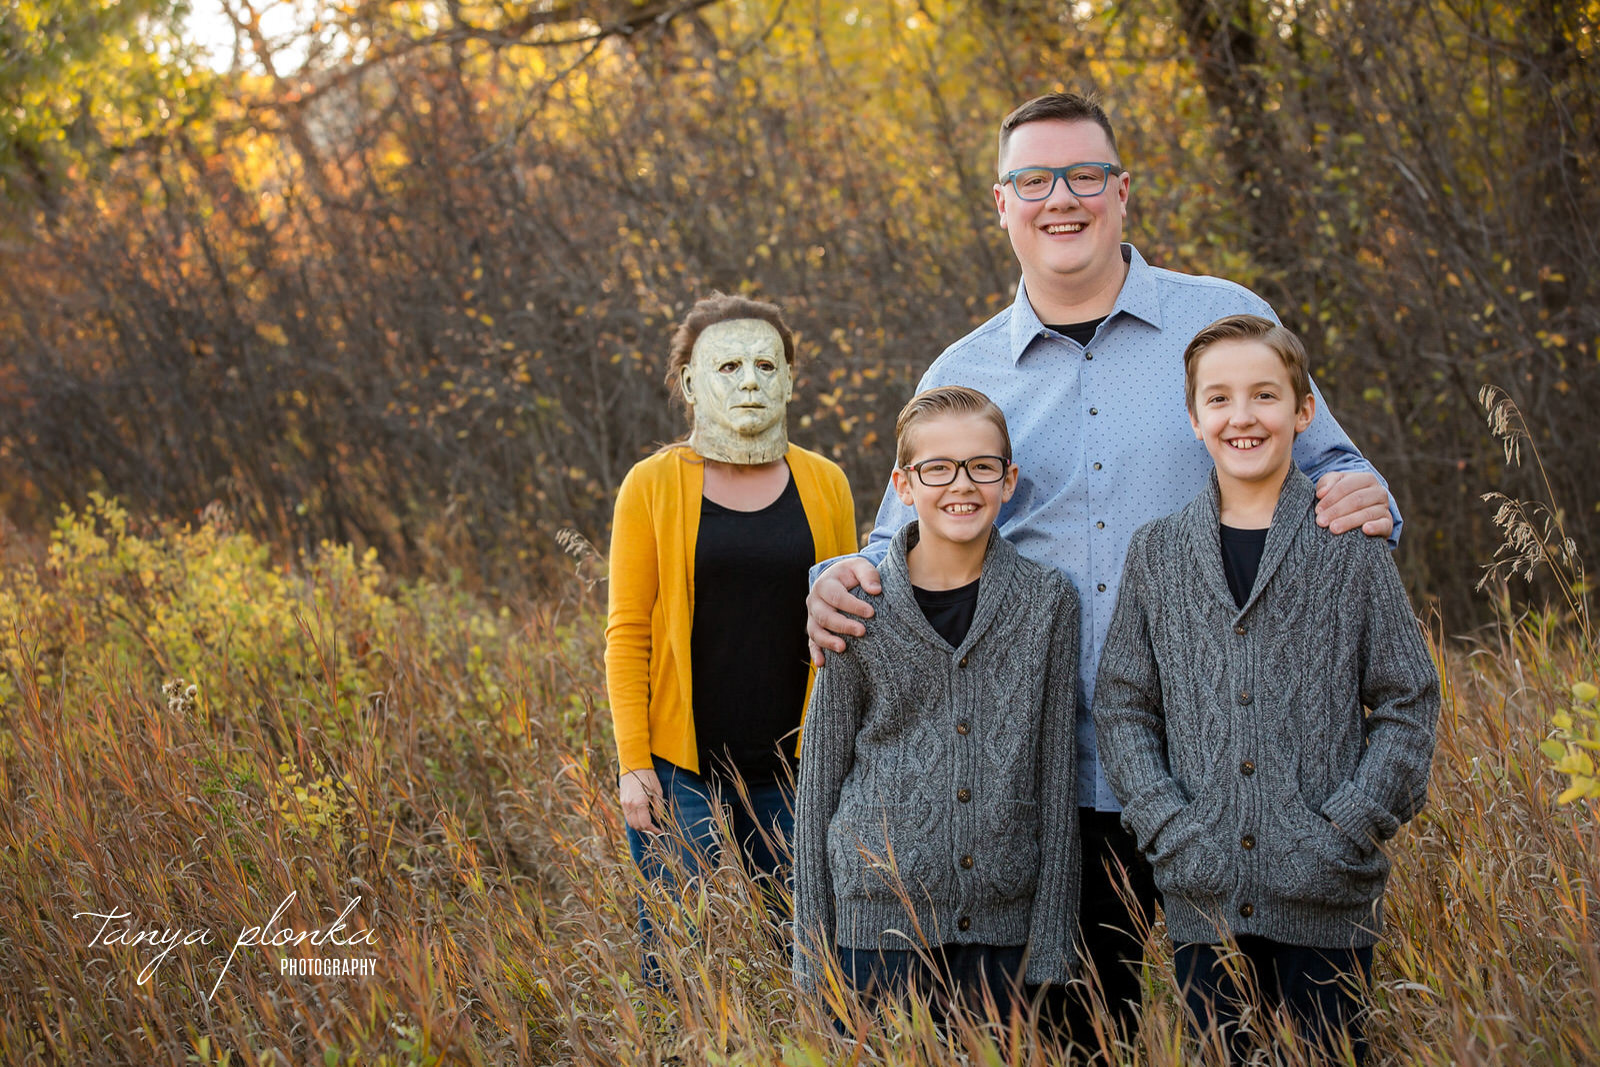 Family poses smiling while mom wearing Jason mask stands behind them